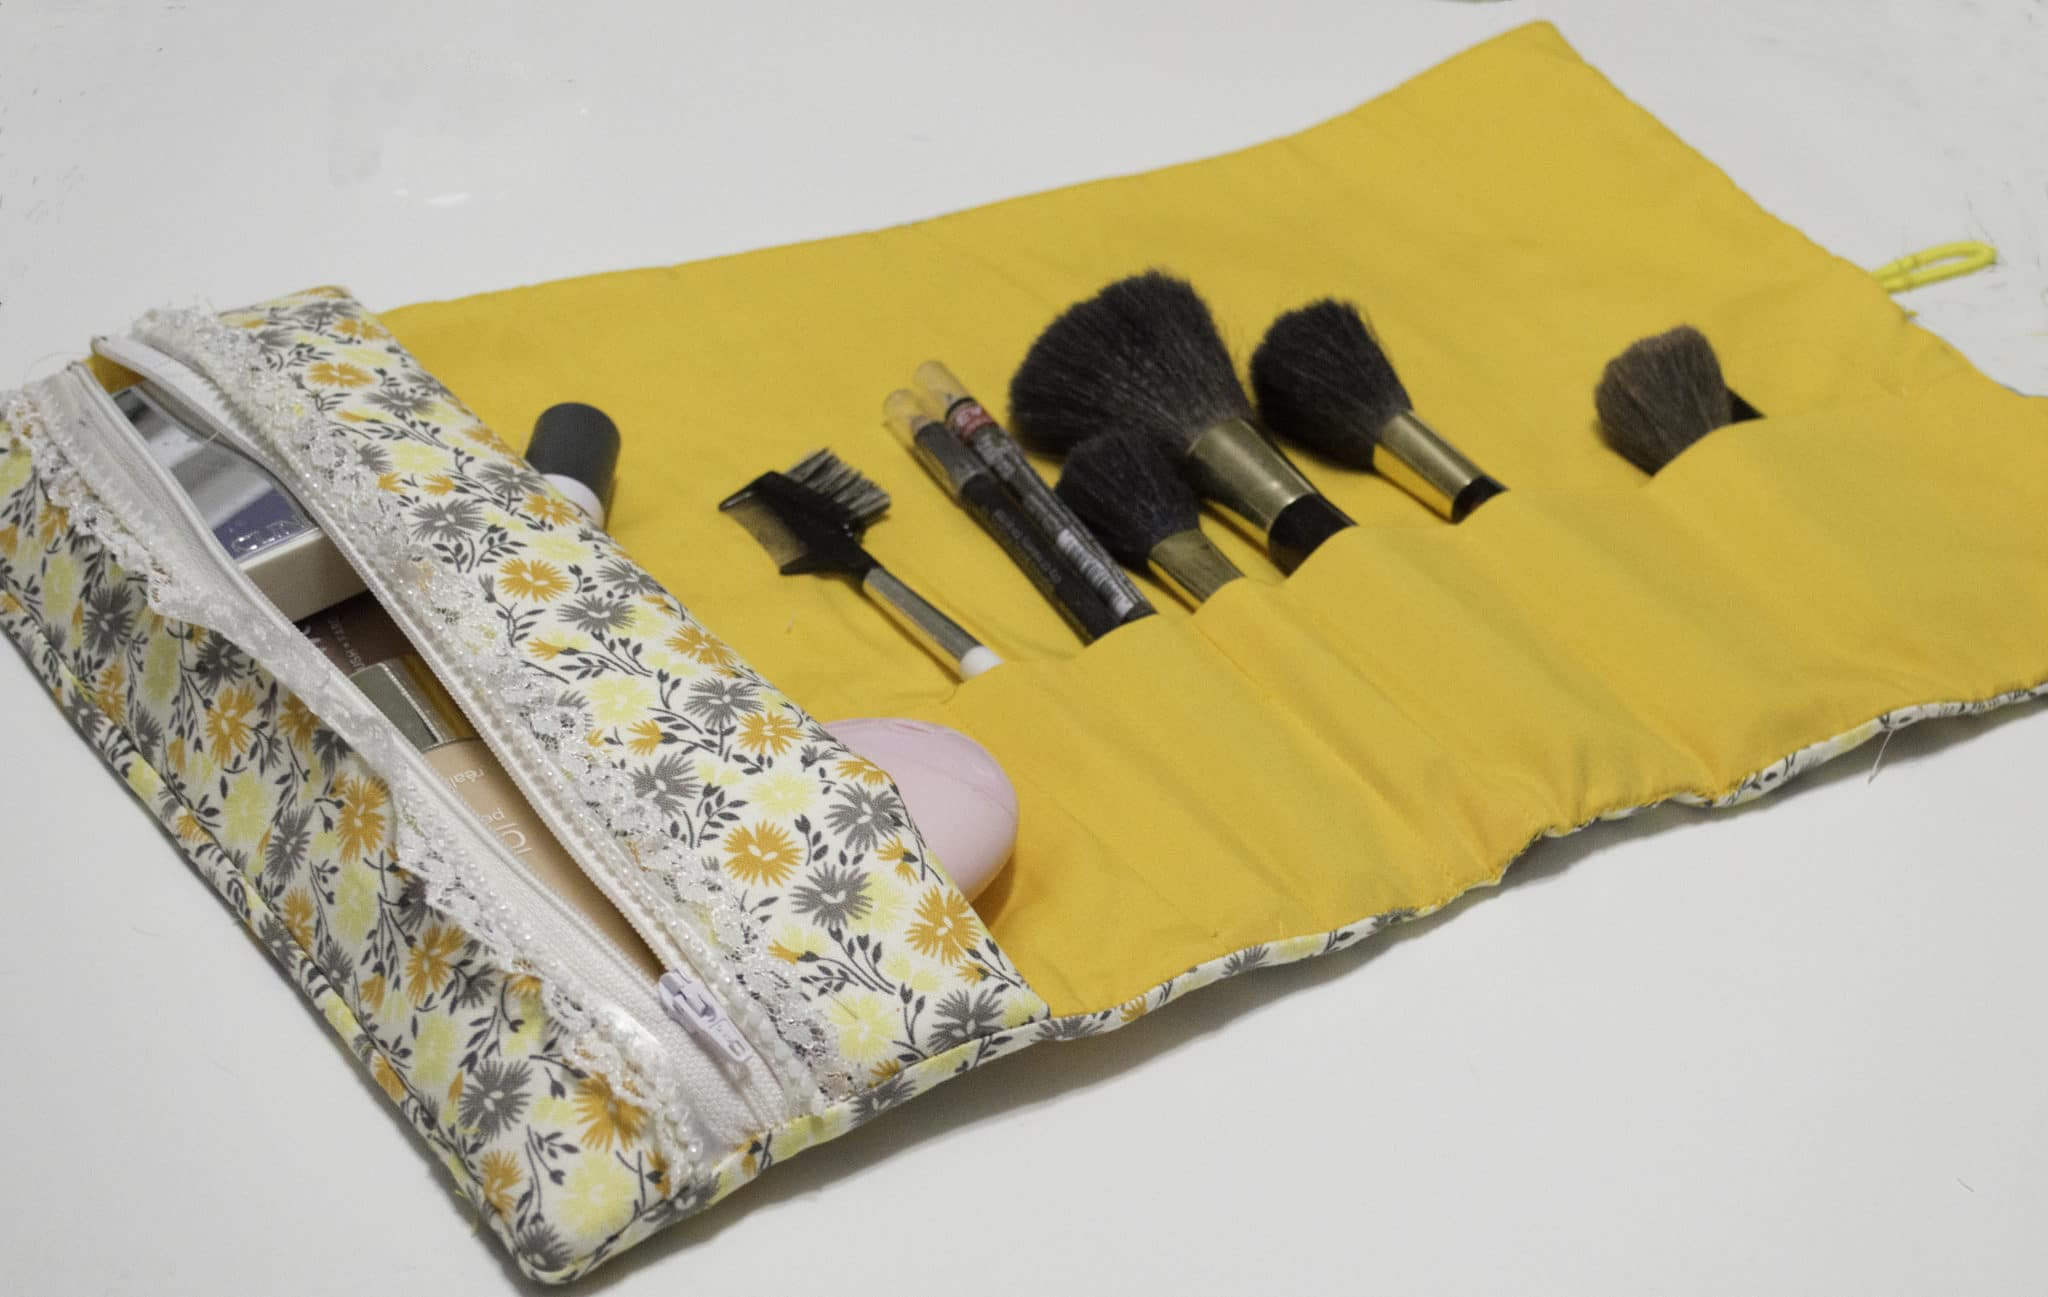 Open rollup makeup pouch and brush caddy